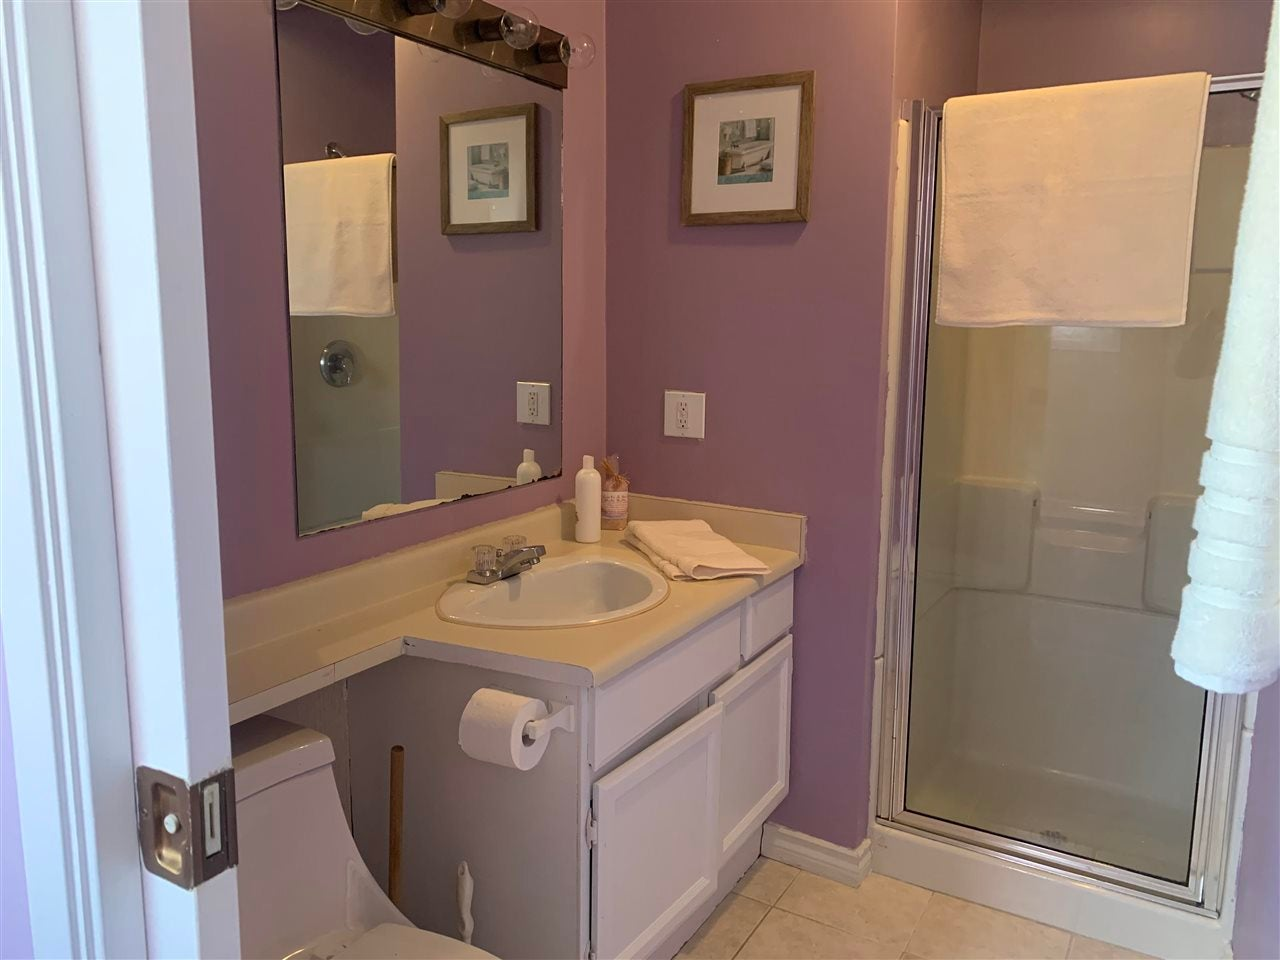 2 230 W 15TH STREET - Central Lonsdale Townhouse for sale, 3 Bedrooms (R2572749) - #18